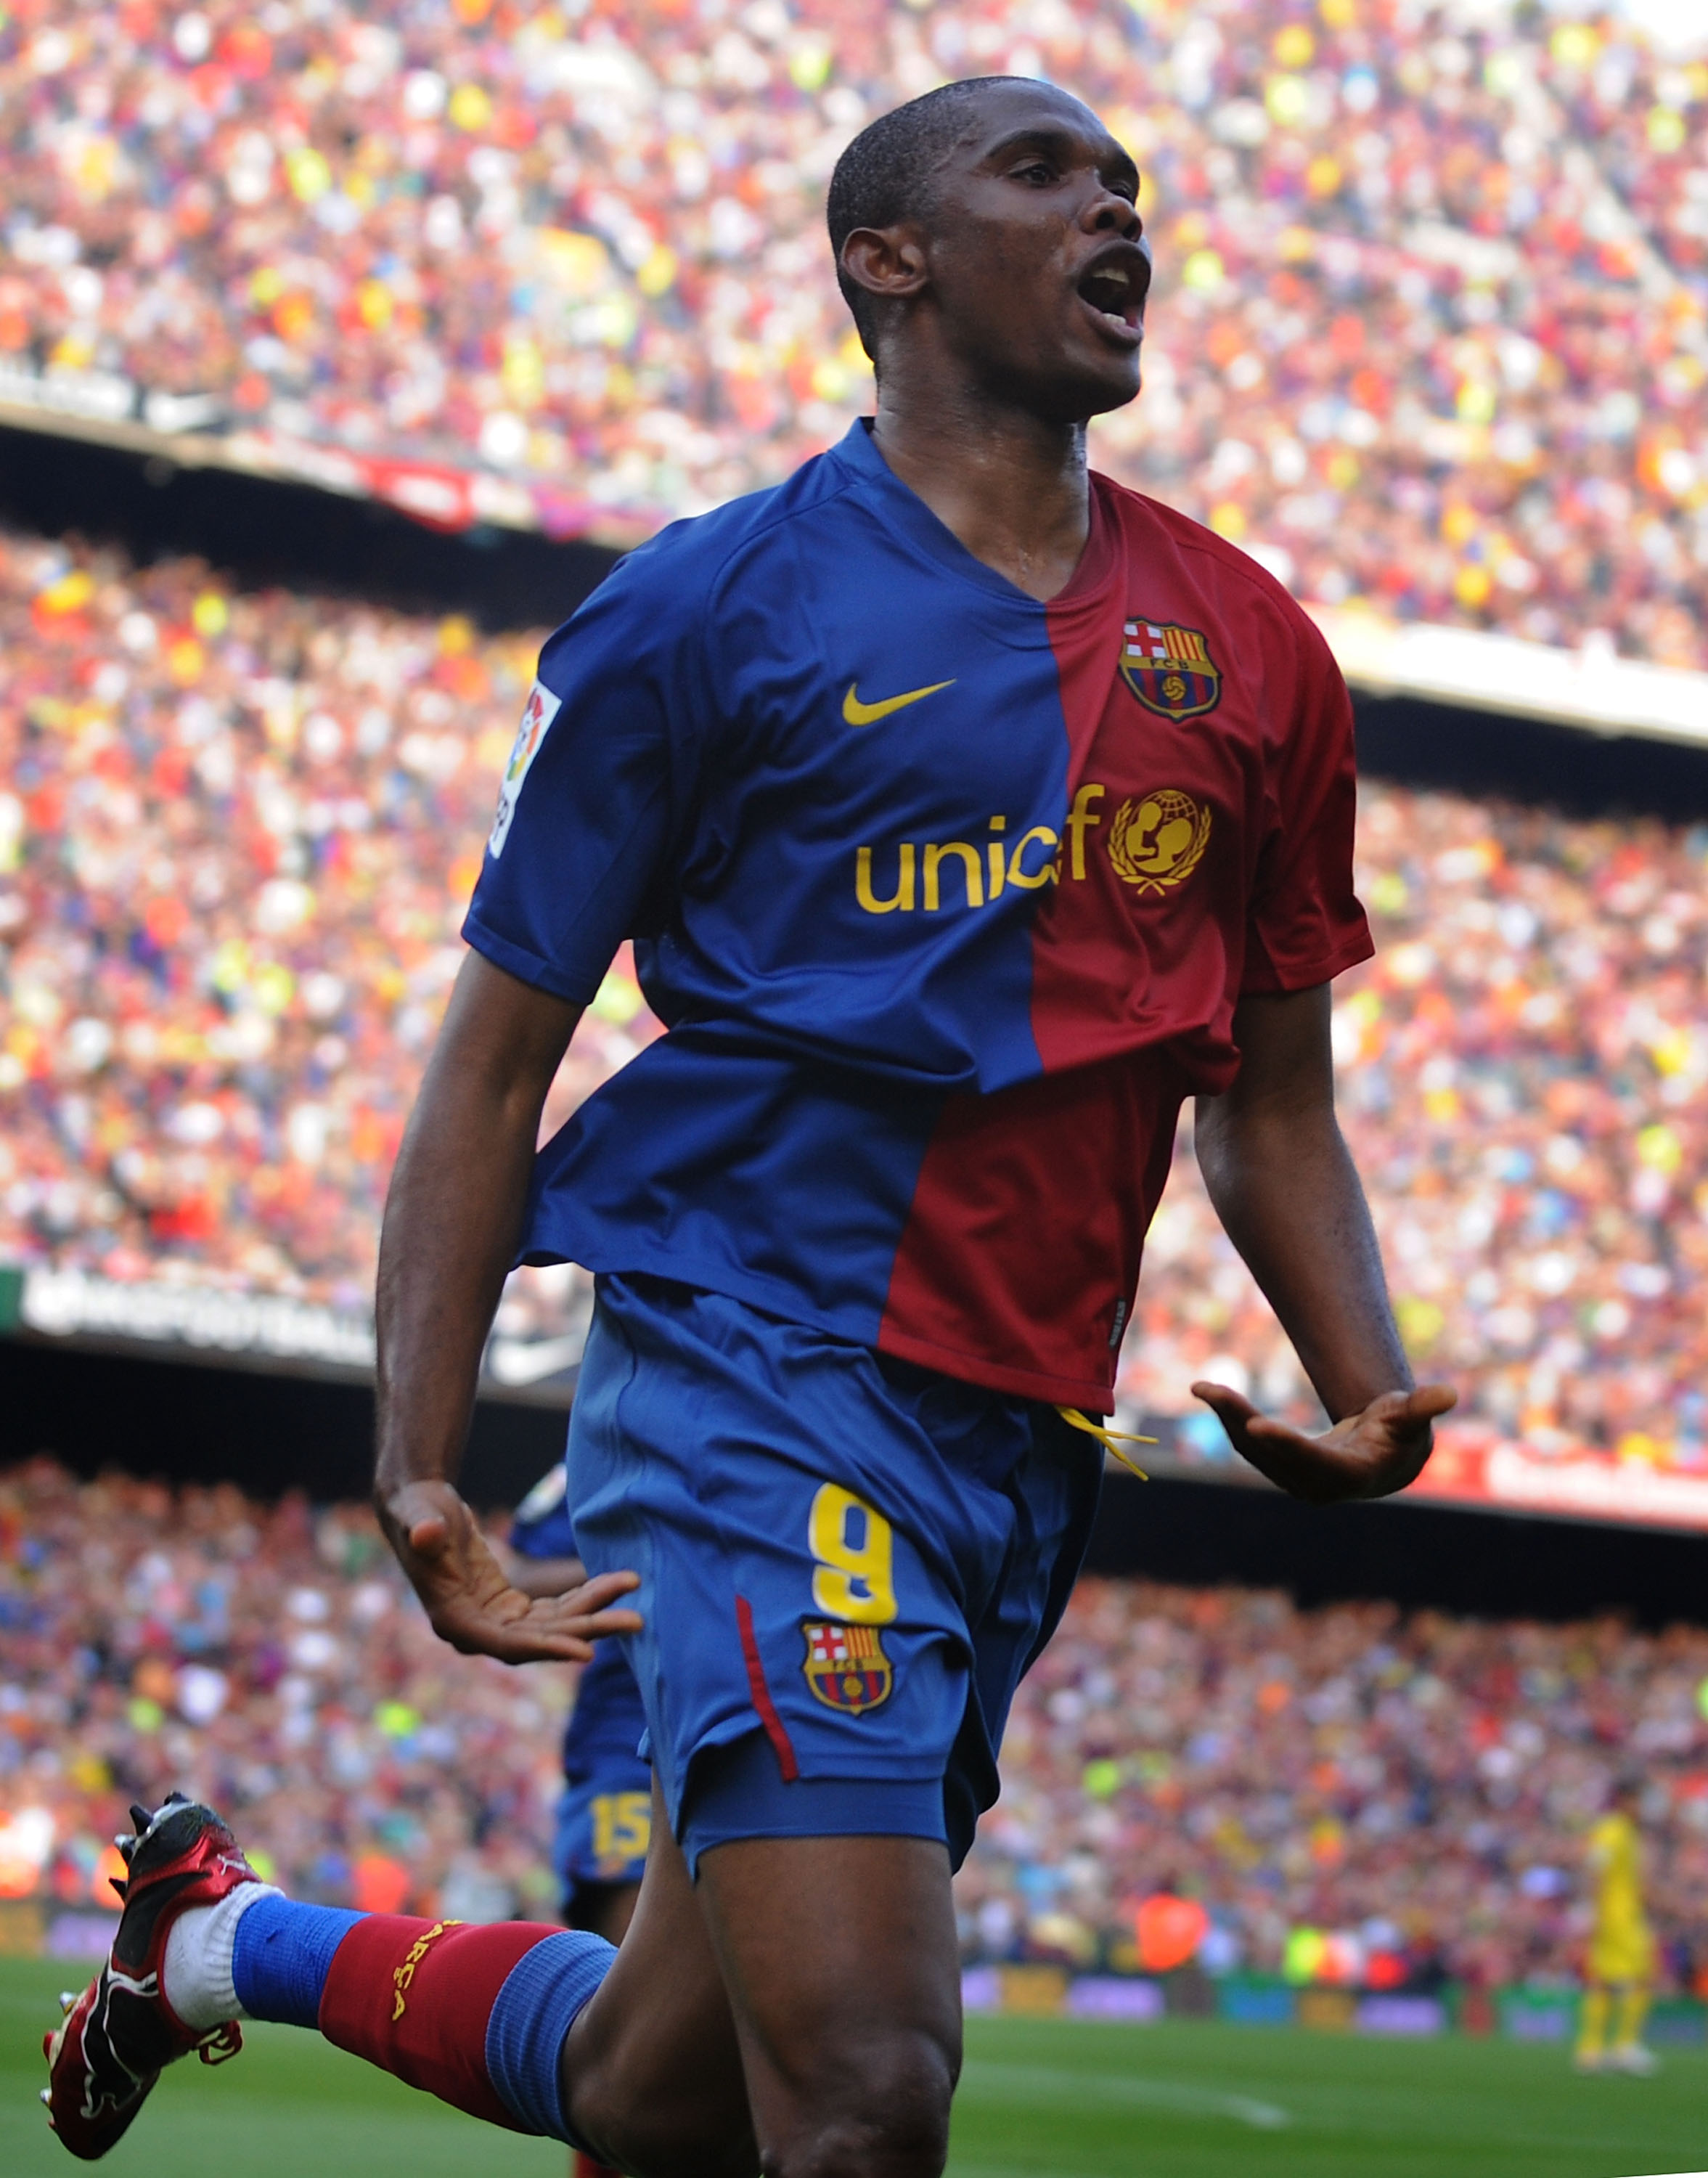 BARCELONA, SPAIN - MAY 10:  Samuel Eto'o of Barcelona celebrates after scoring his team's second goal during the La Liga match between Barcelona and Villarreal at the Nou Camp stadium on May 10, 2009 in Barcelona, Spain.  (Photo by Denis Doyle/Getty Image